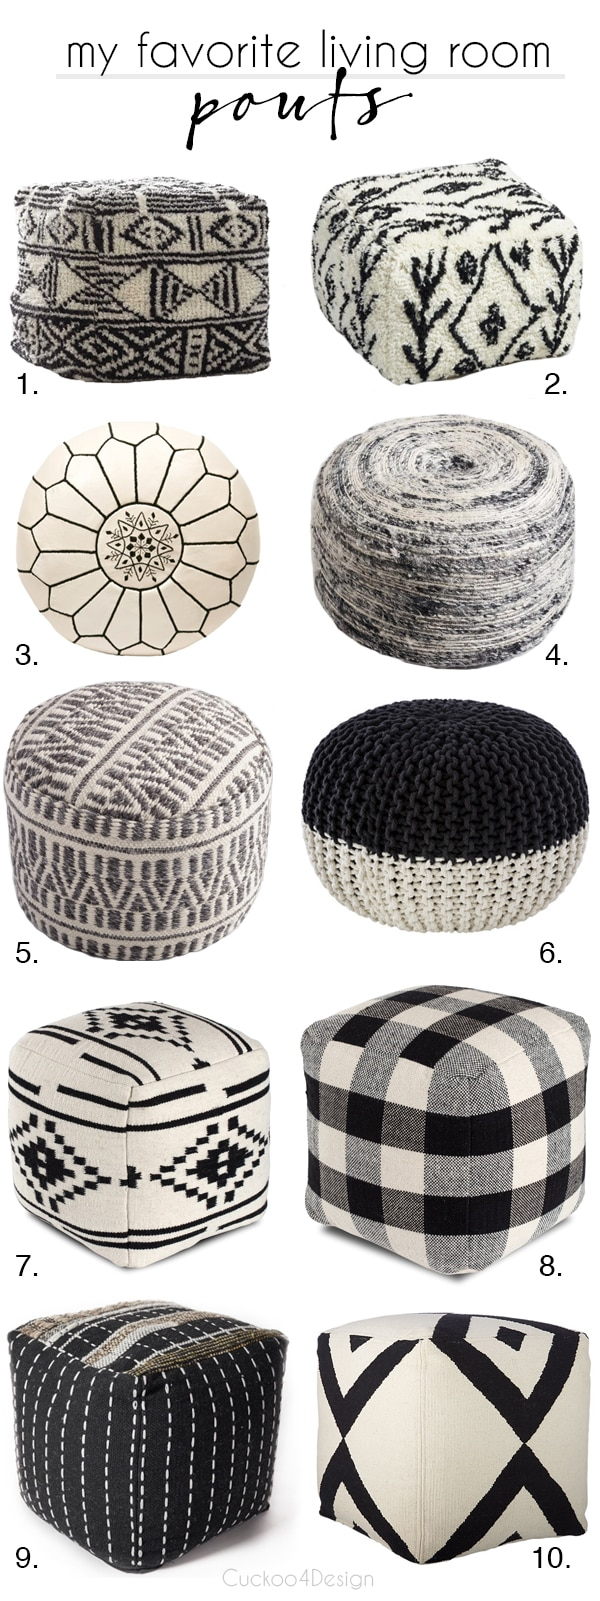 black and white living room poufs